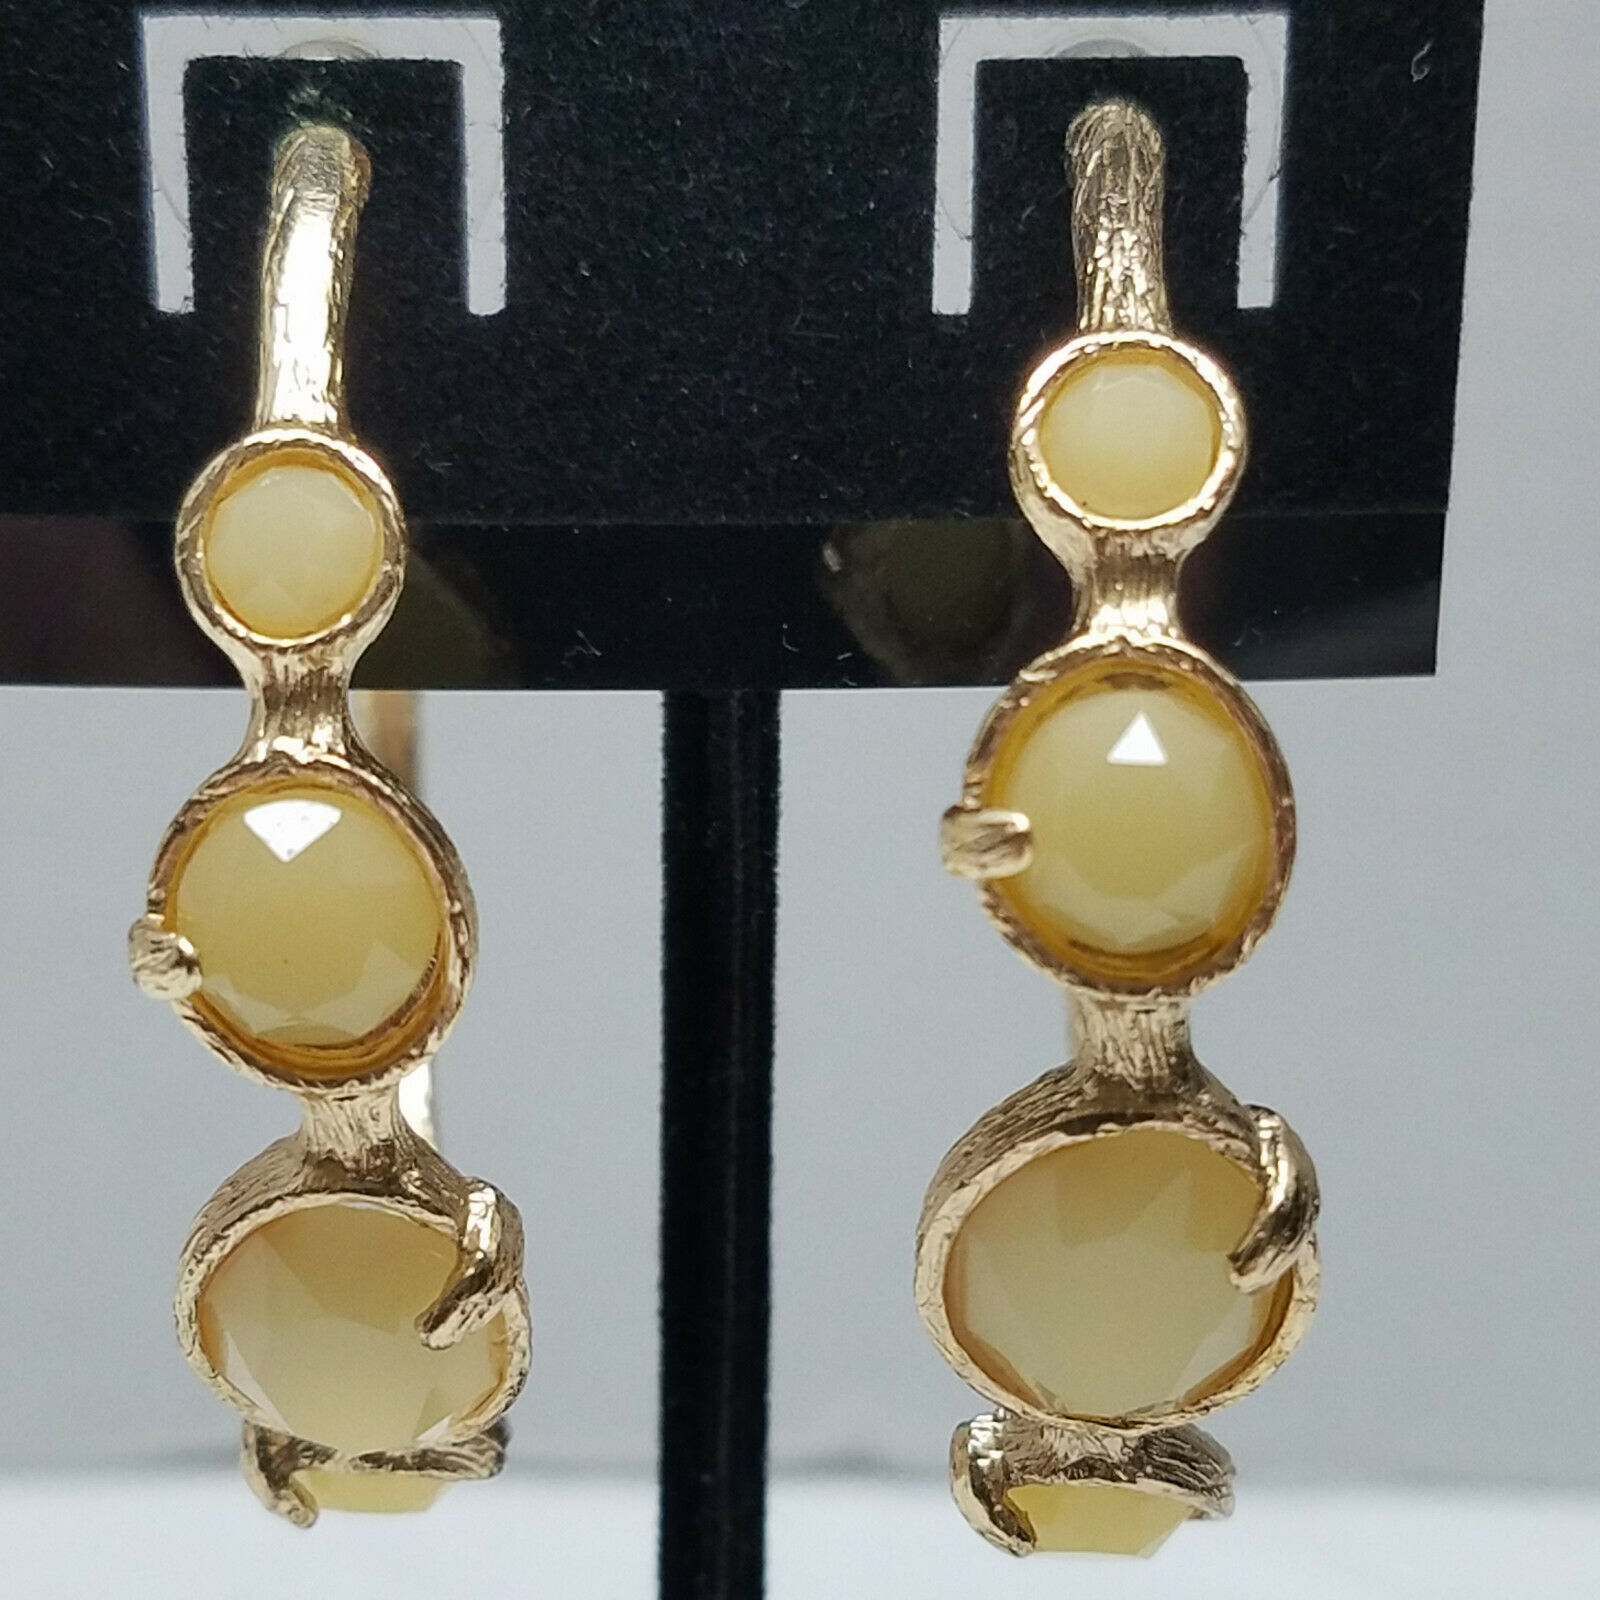 Primary image for Gold Tone Textured Loops With Simulated Stones Earrings Vintage